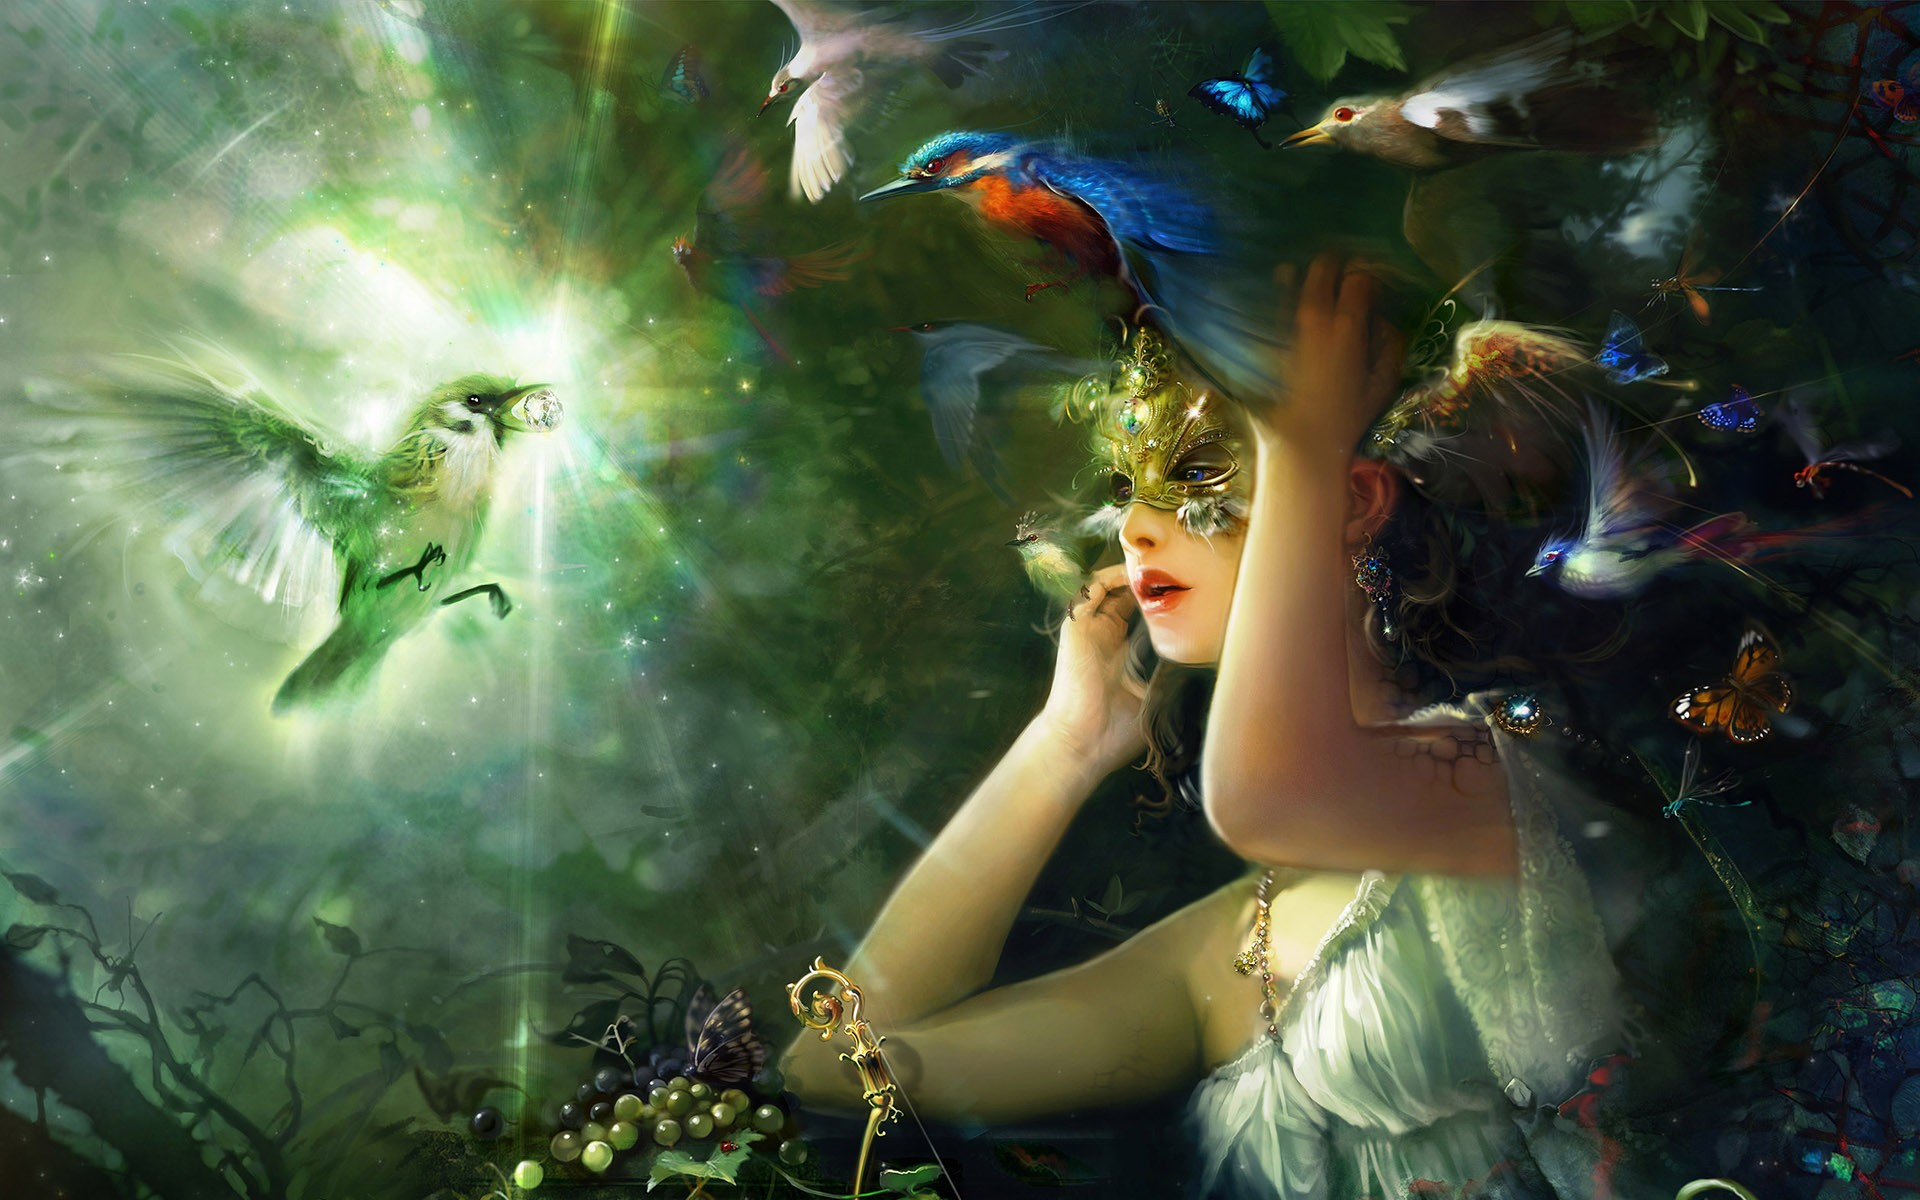 fairy computer wallpaper background - photo #29